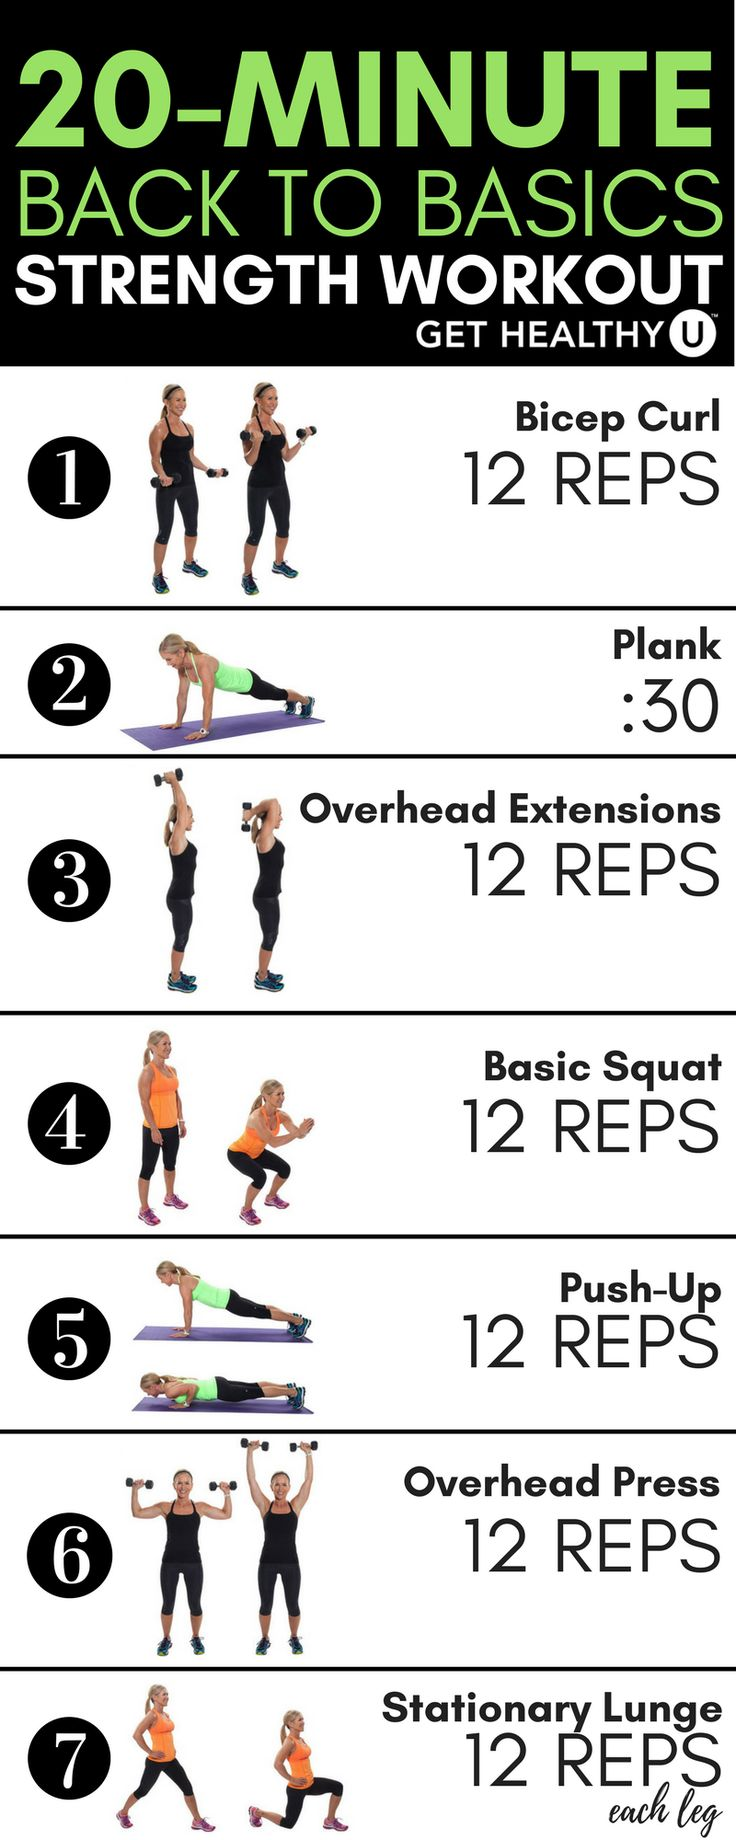 This 20-minute strength training routine contains some of these building blocks of fitness: squats, lunges, planks, push-ups, and more. It's a quick, total-body workout that utilizes all the major muscle groups through basic movements needed to build strength.